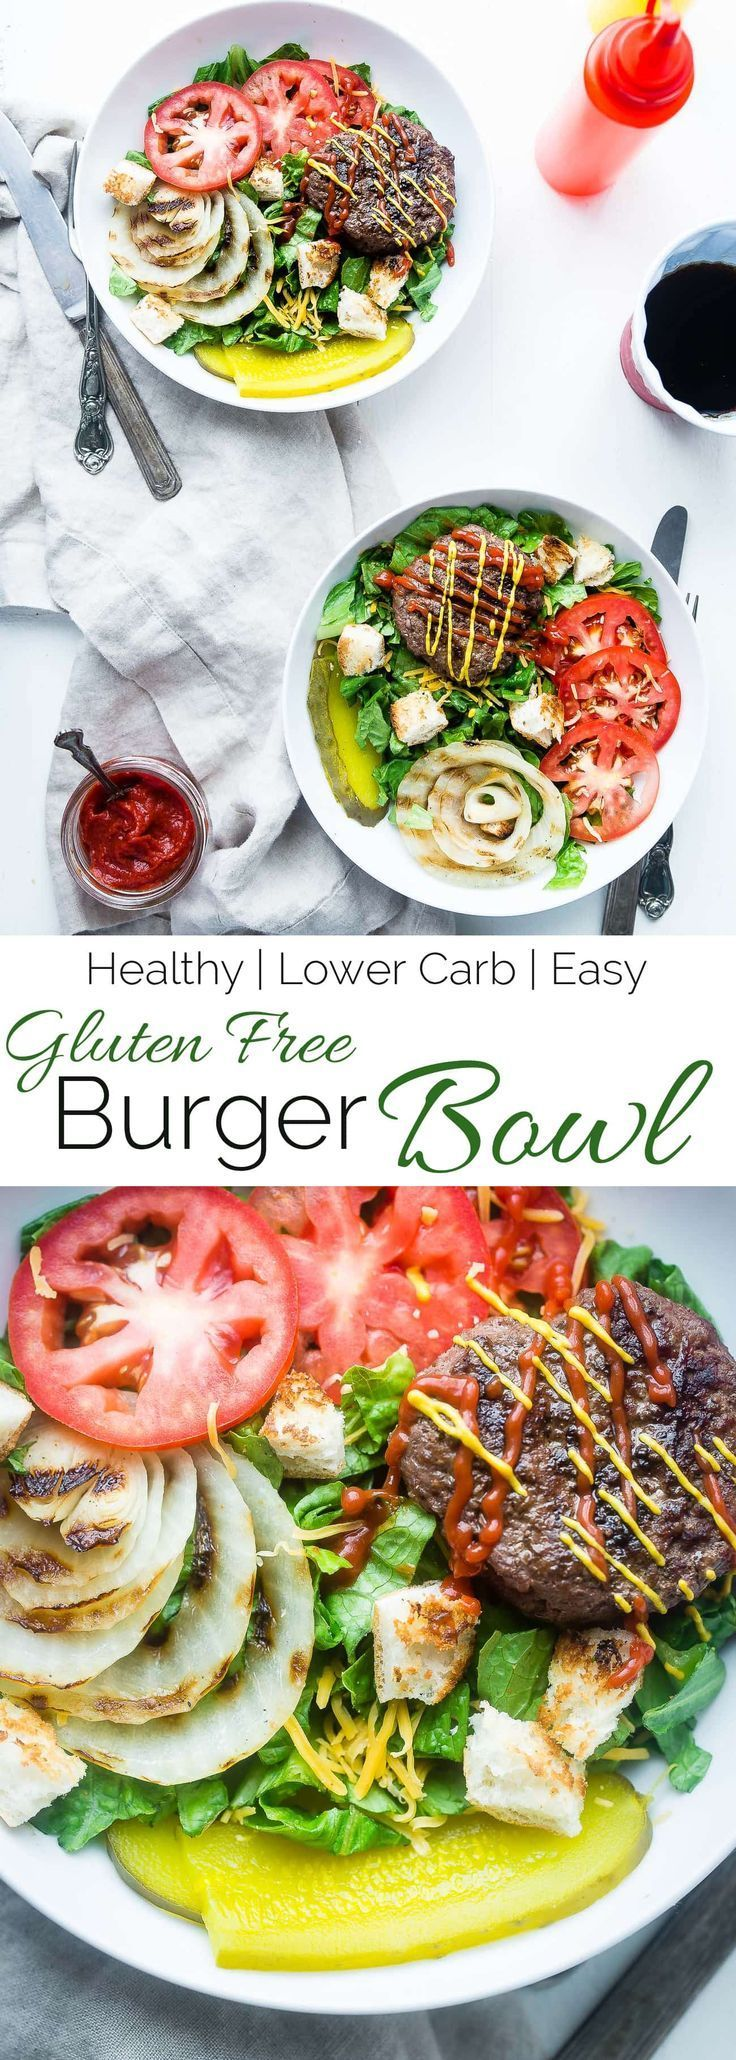 Cheeseburger Salad Bowls - These gluten free cheeseburger salad bowls are a healthy, lighter way to get your burger fix this Summer! They're a healthy meal that the whole family will love!   Foodfaithfitness.com   @FoodFaithFit